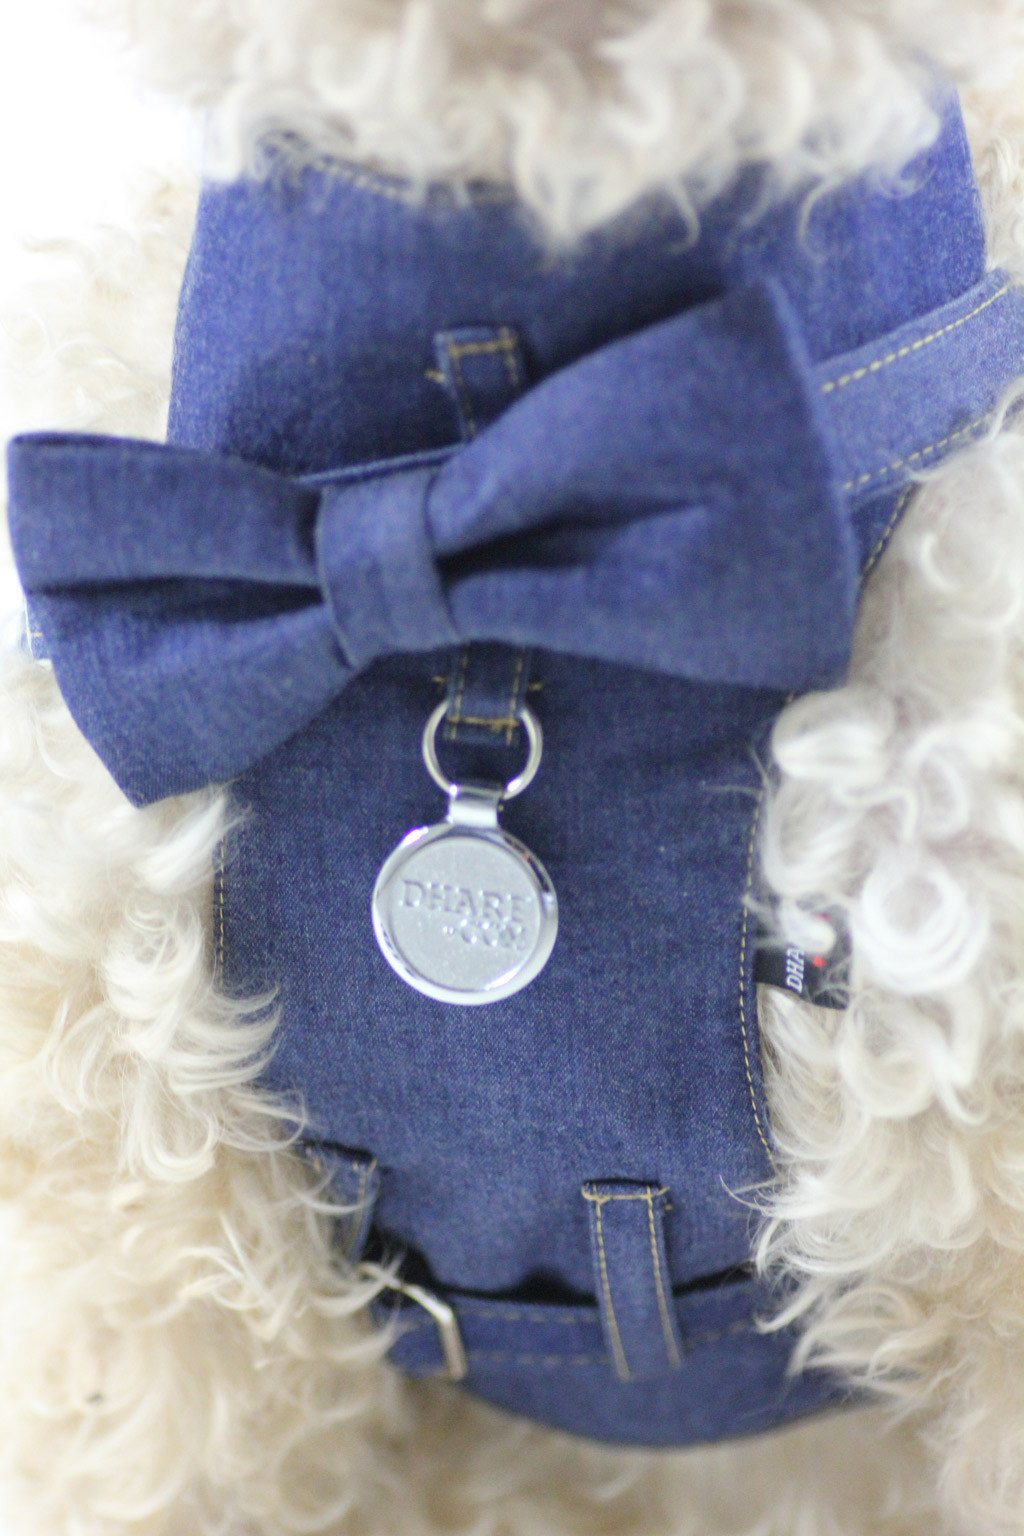 Jean harness and bow tie